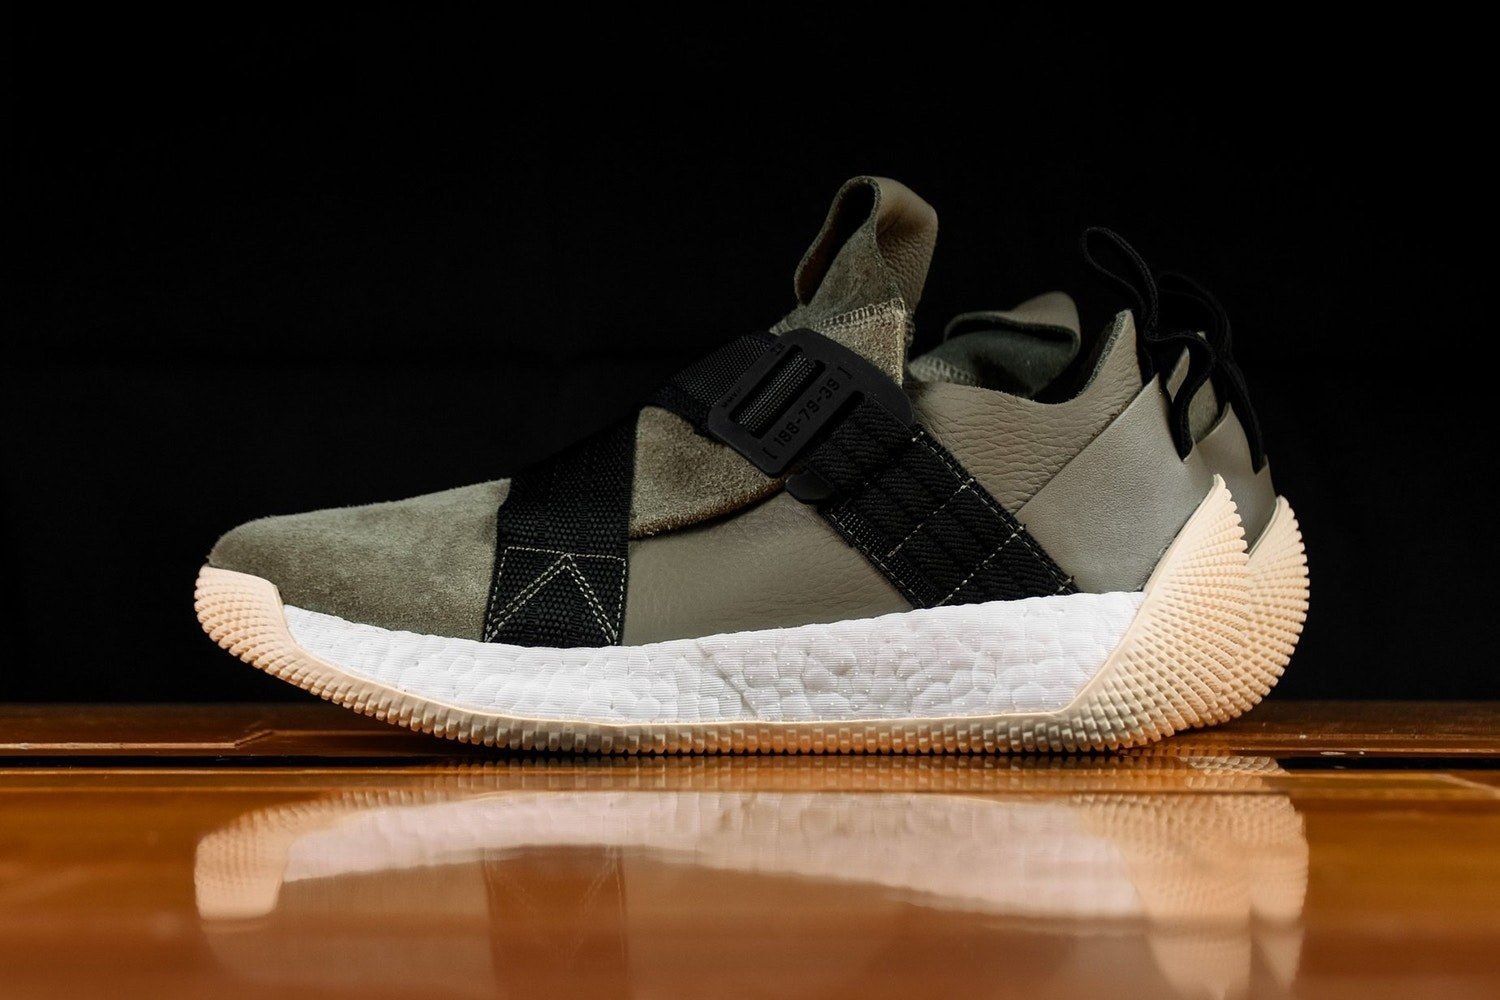 Adidas Harden Ls 2 Buckle Olive First Look 1